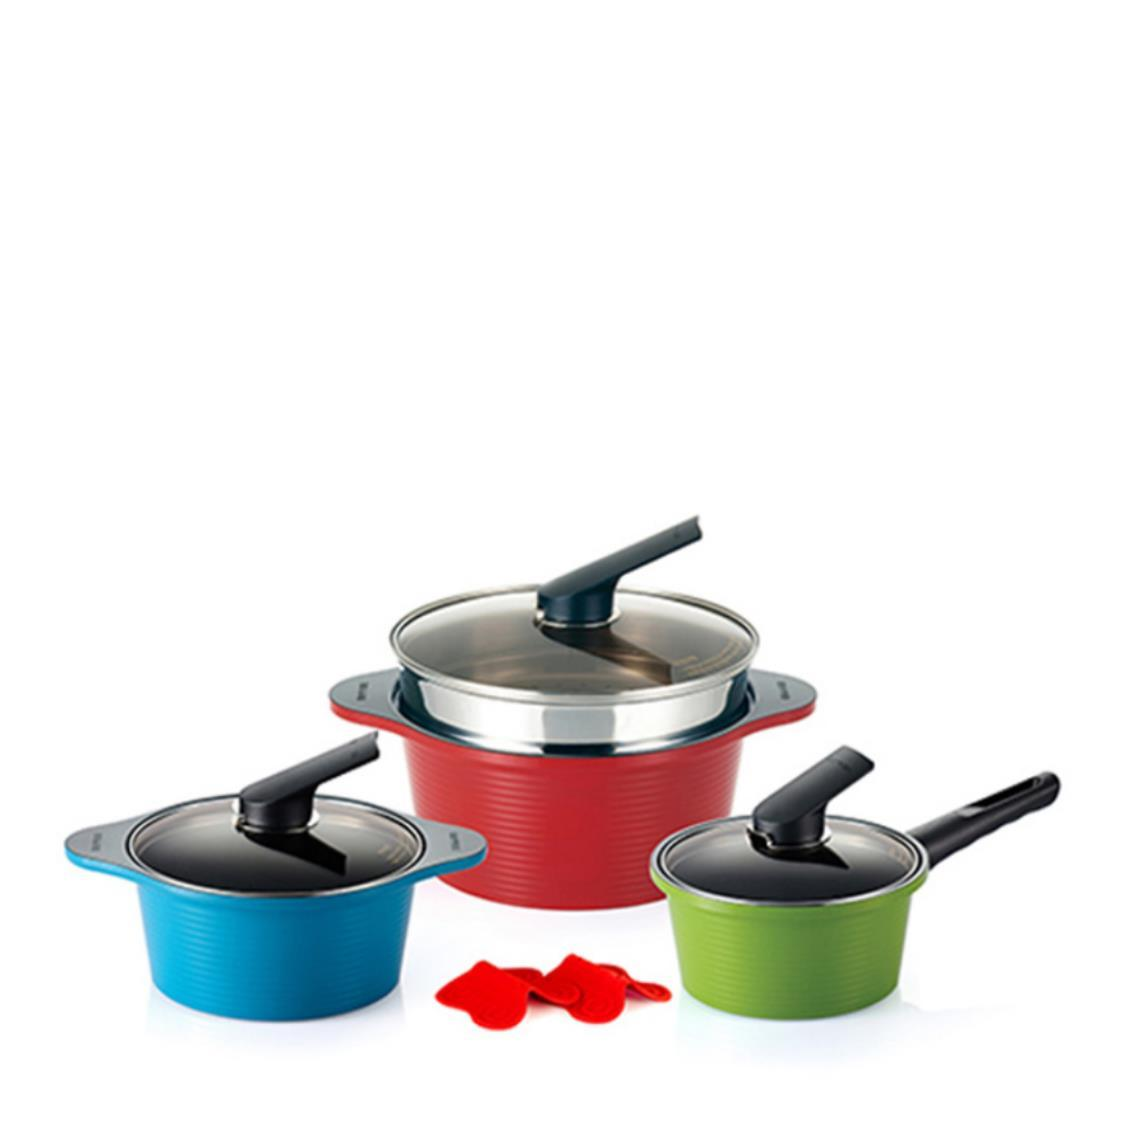 IH Alumite 3pc Die Cast High Pure Ceramic Pots Steamer Set